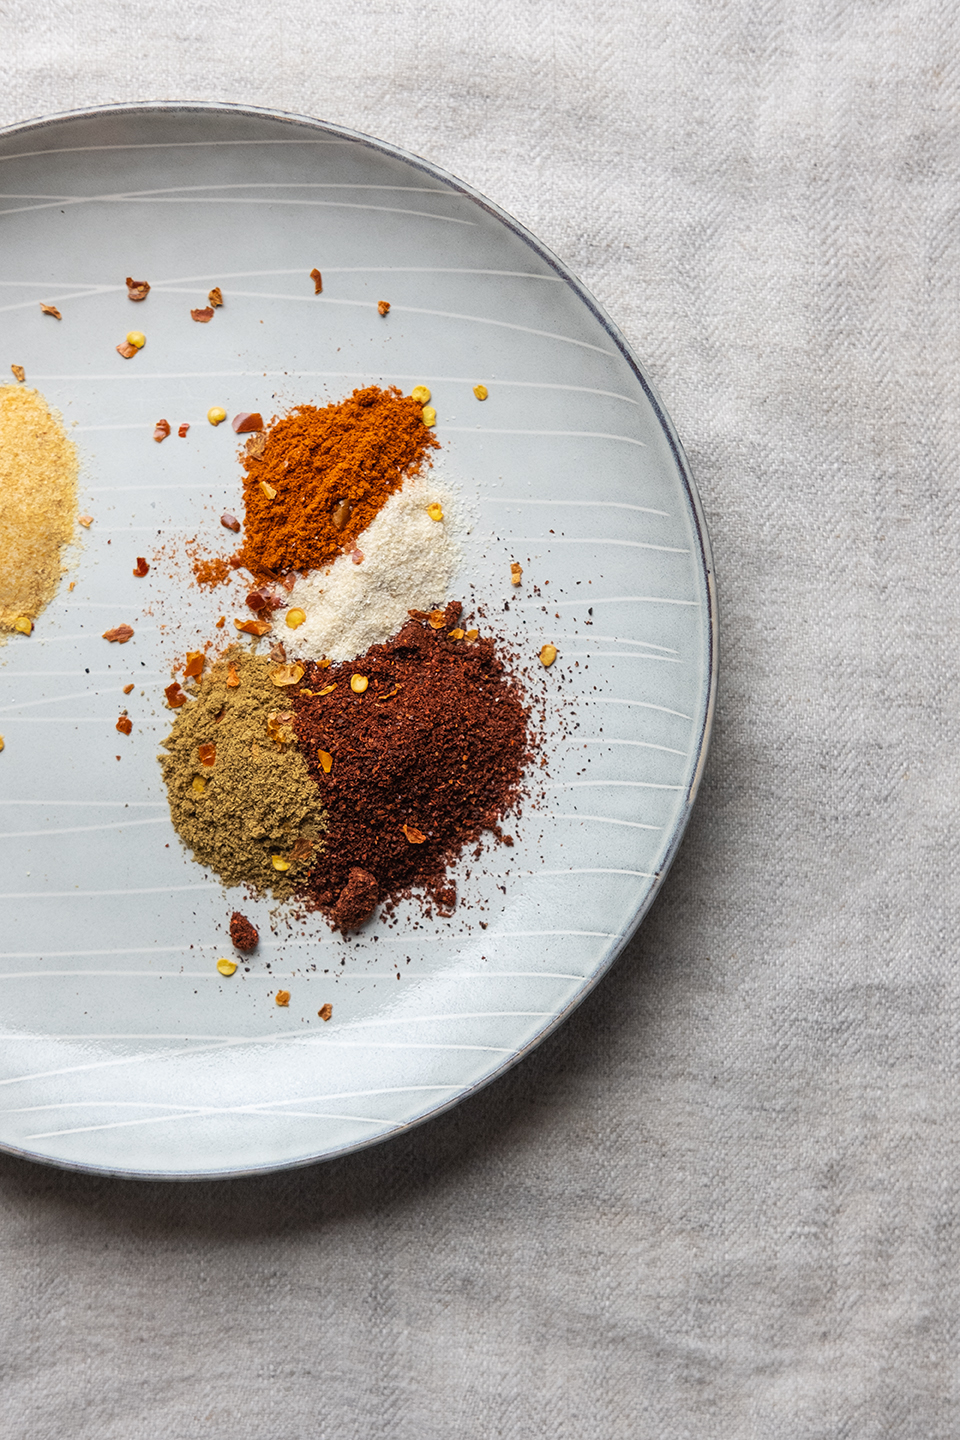 Brilliant_Pixel_Imaging_Food_Photography_2Jodiloves_Spices.jpg